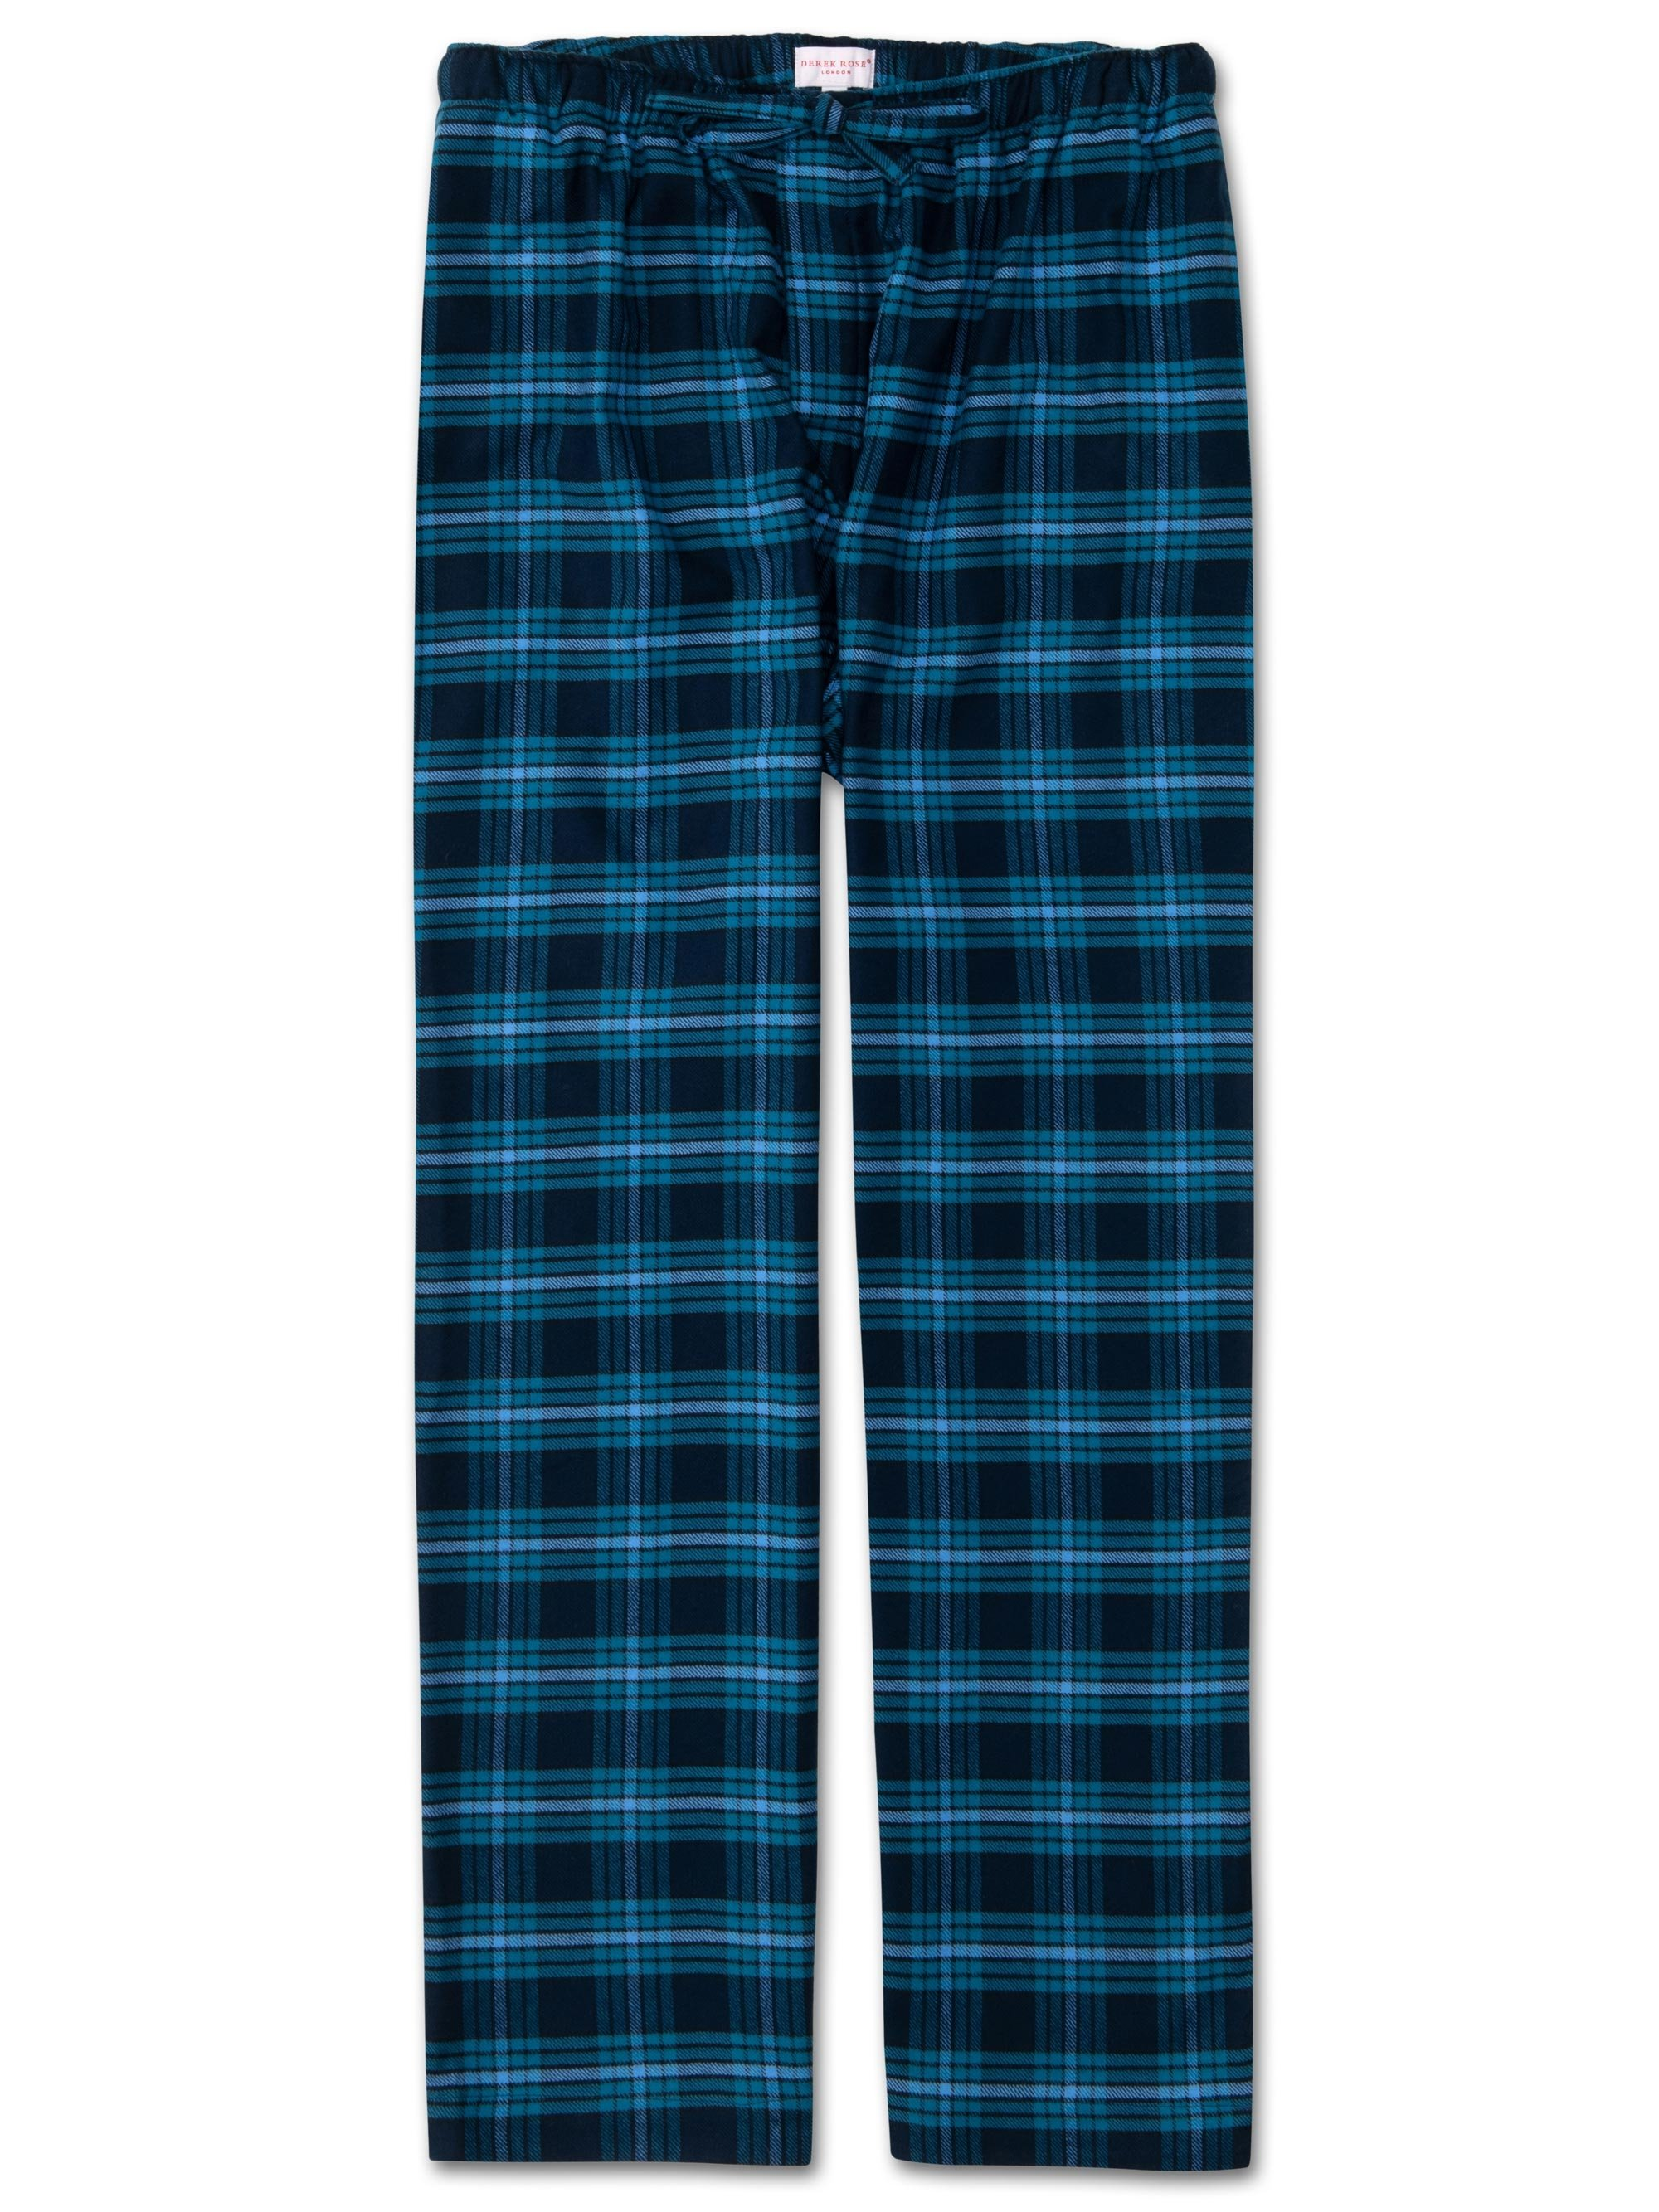 Men's Lounge Trousers Kelburn 8 Brushed Cotton Check Navy